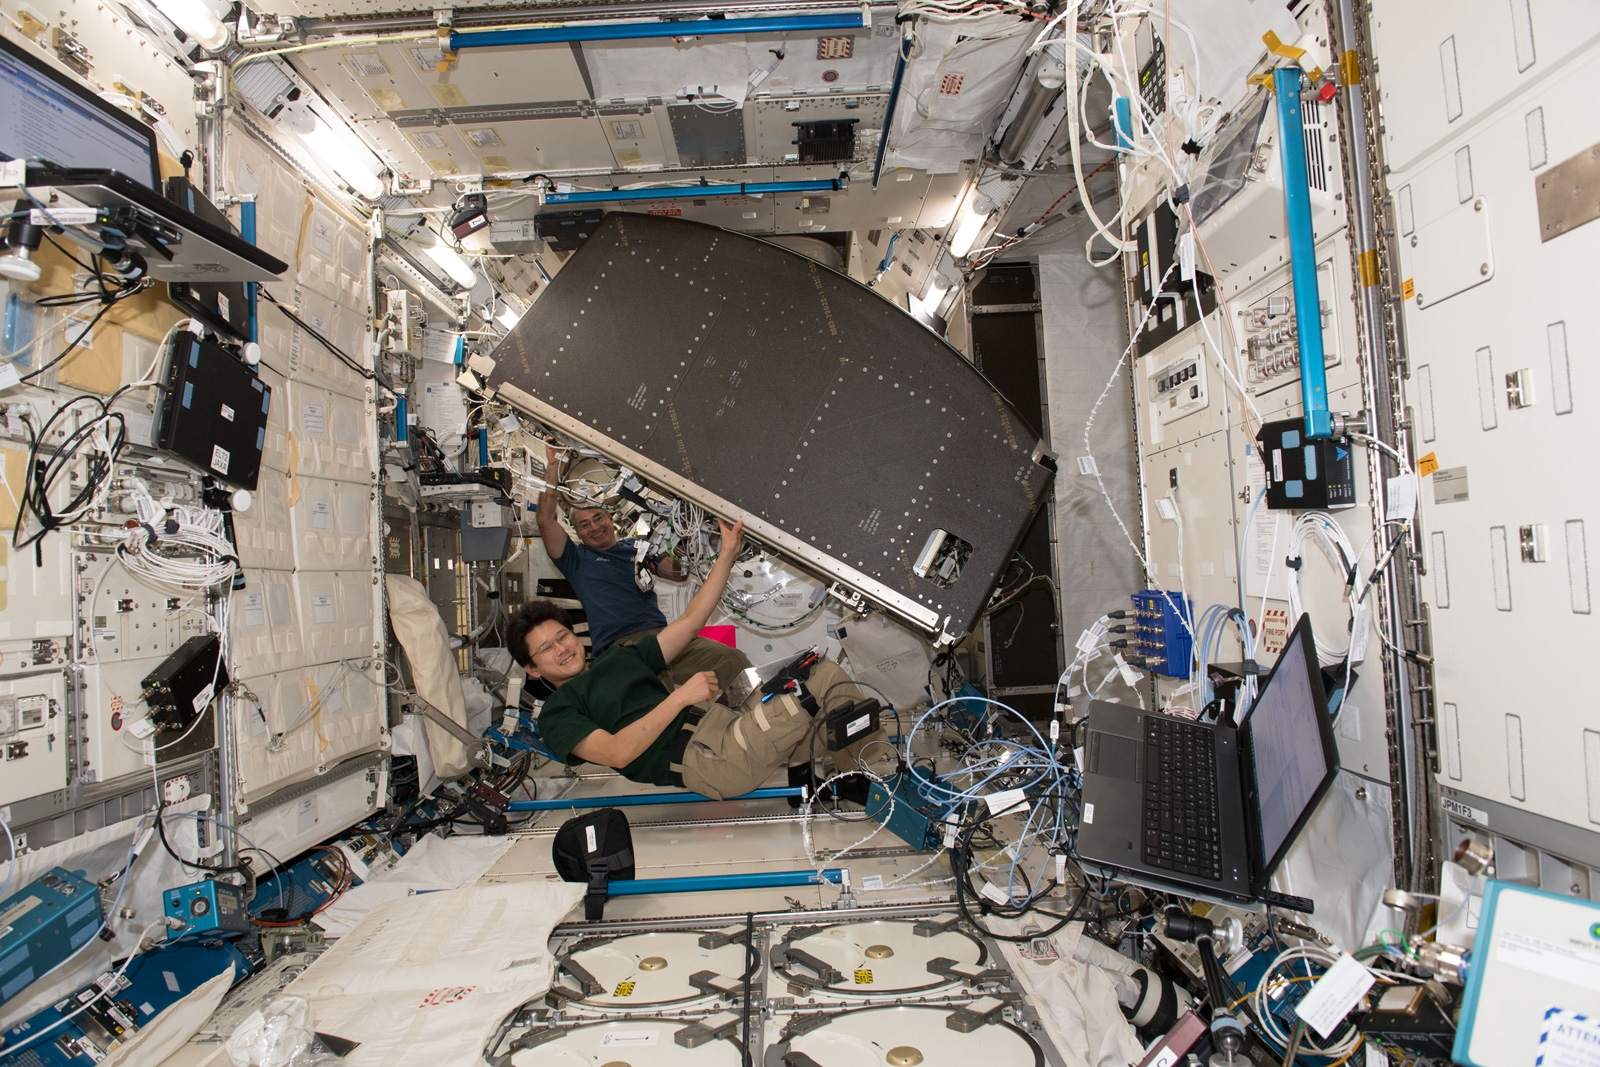 Space Station receives the last of NASA's science racks after 19 years | DeviceDaily.com